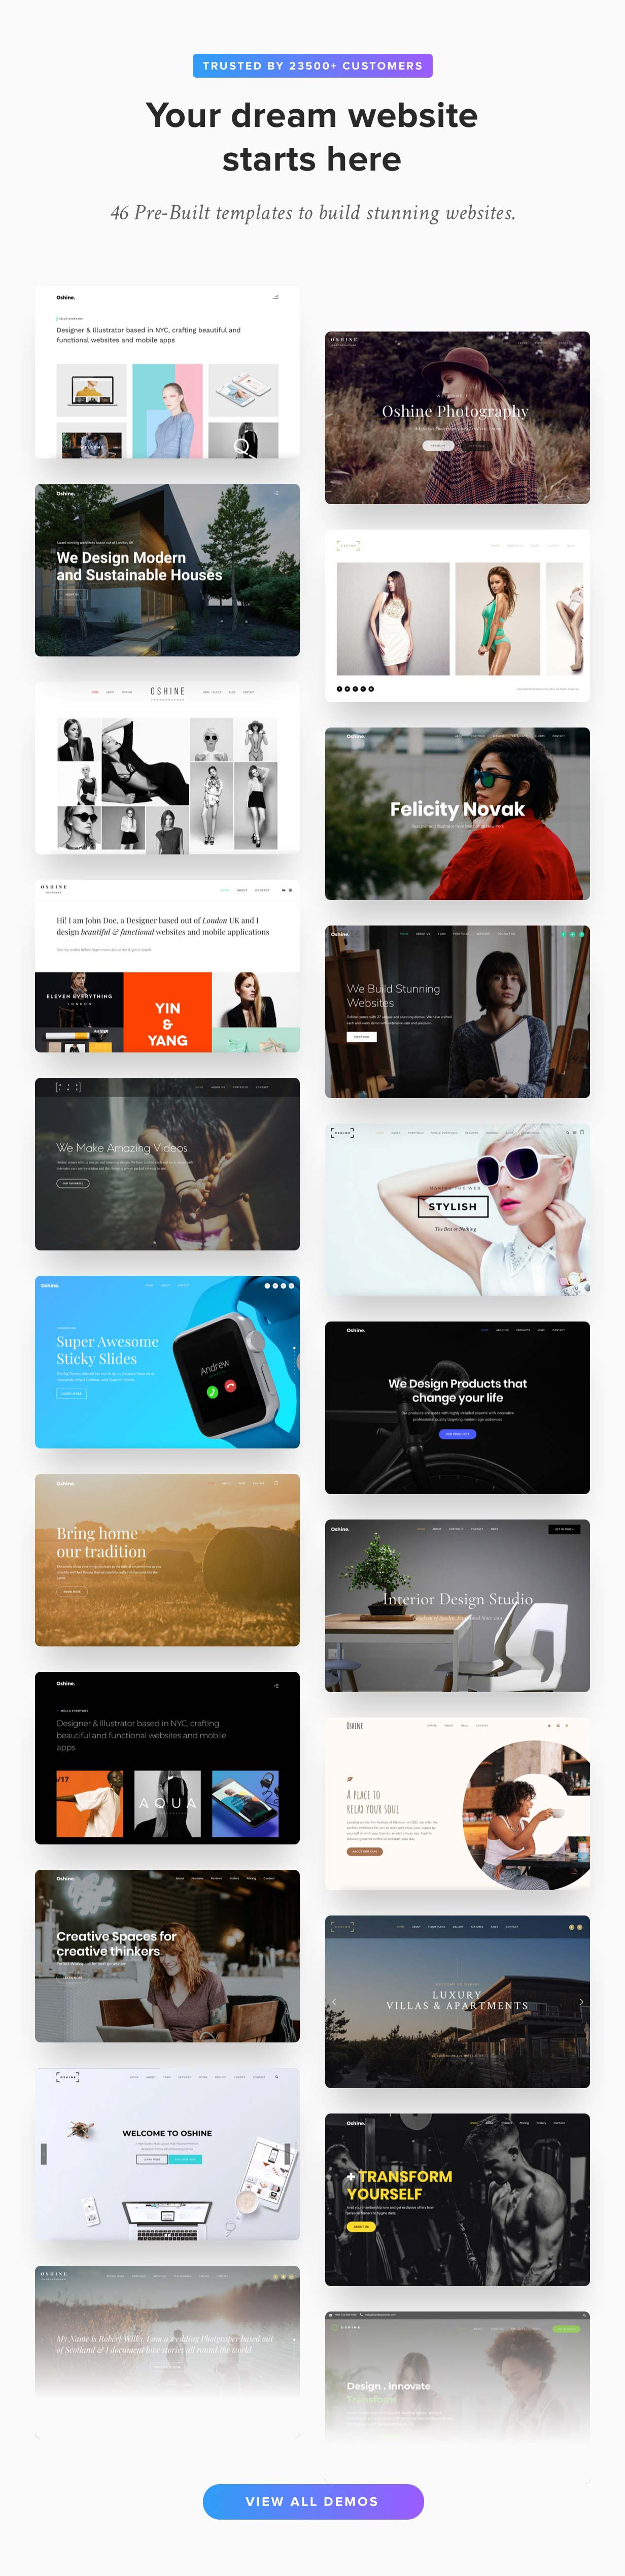 main oshine splash - Oshine - Multipurpose Creative WordPress Theme